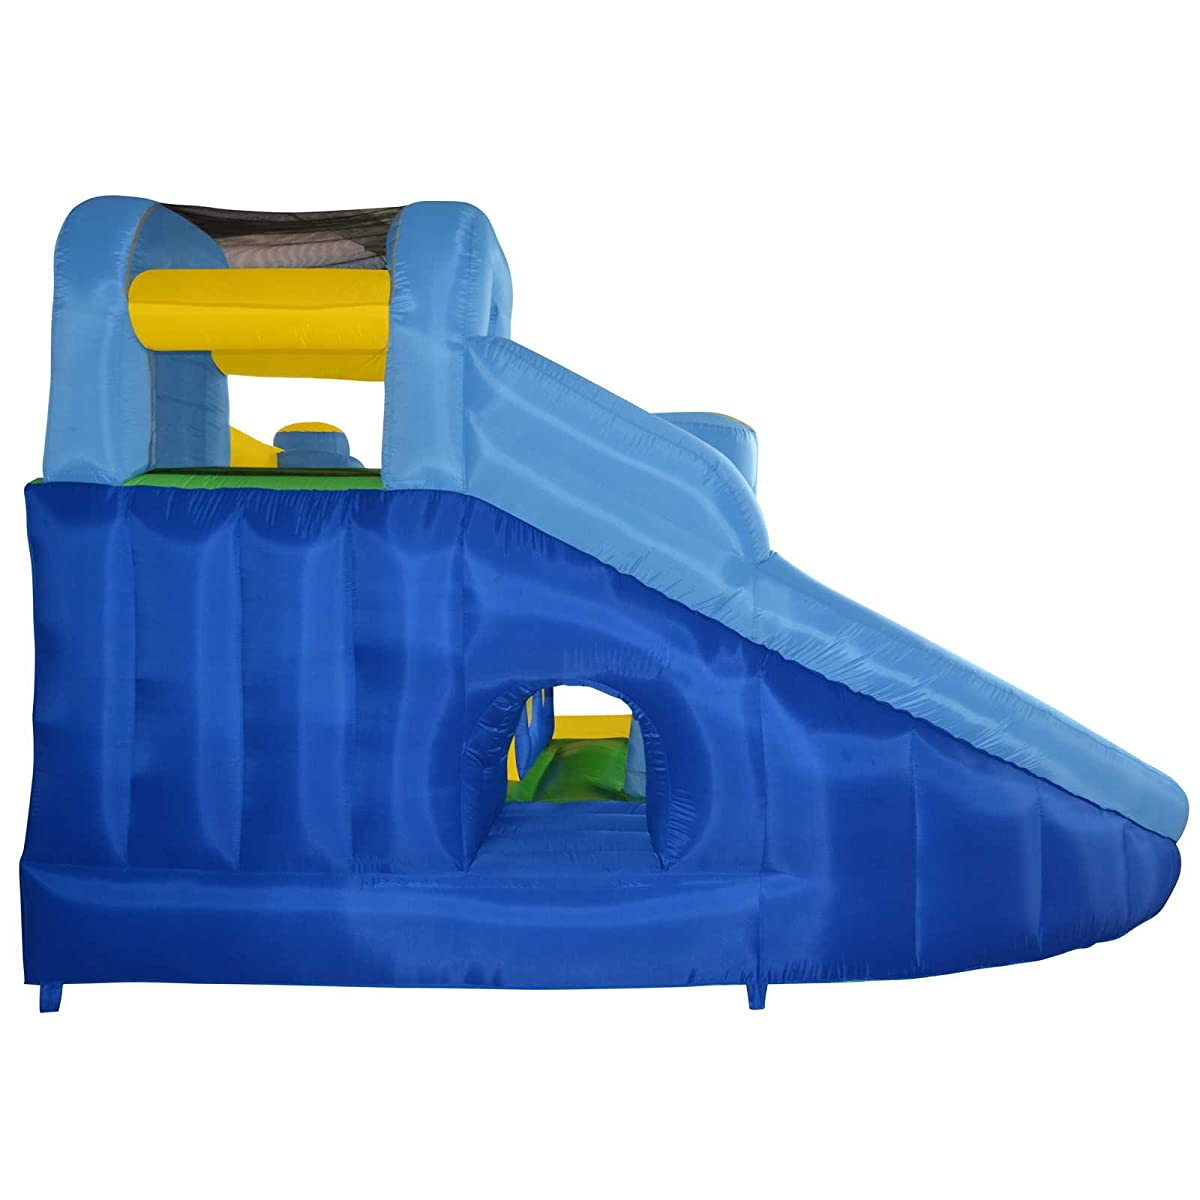 Cloud 9 Mighty Bounce House - Quad Combo - Inflatable Kids Jumper with Blower